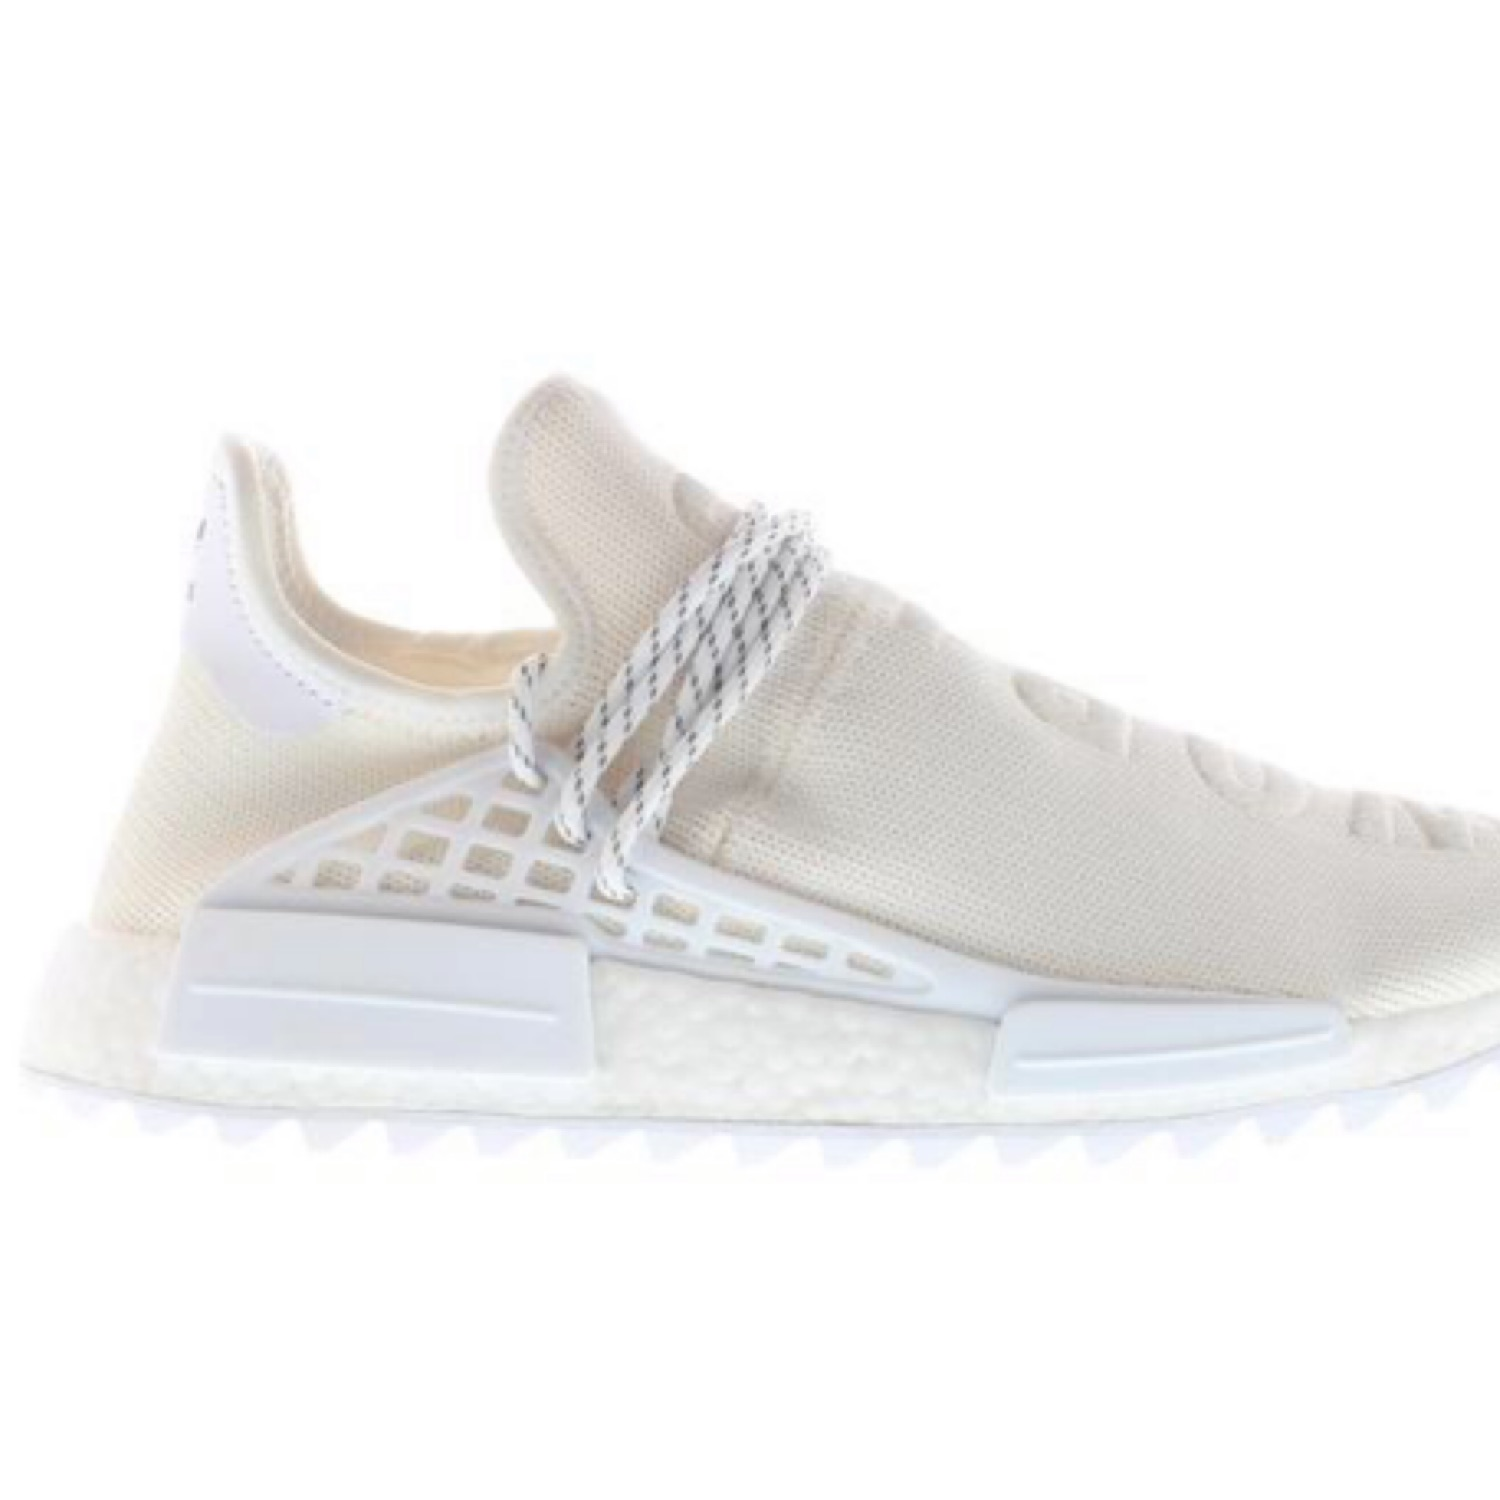 big sale 64890 67433 Adidas Human Race Cream